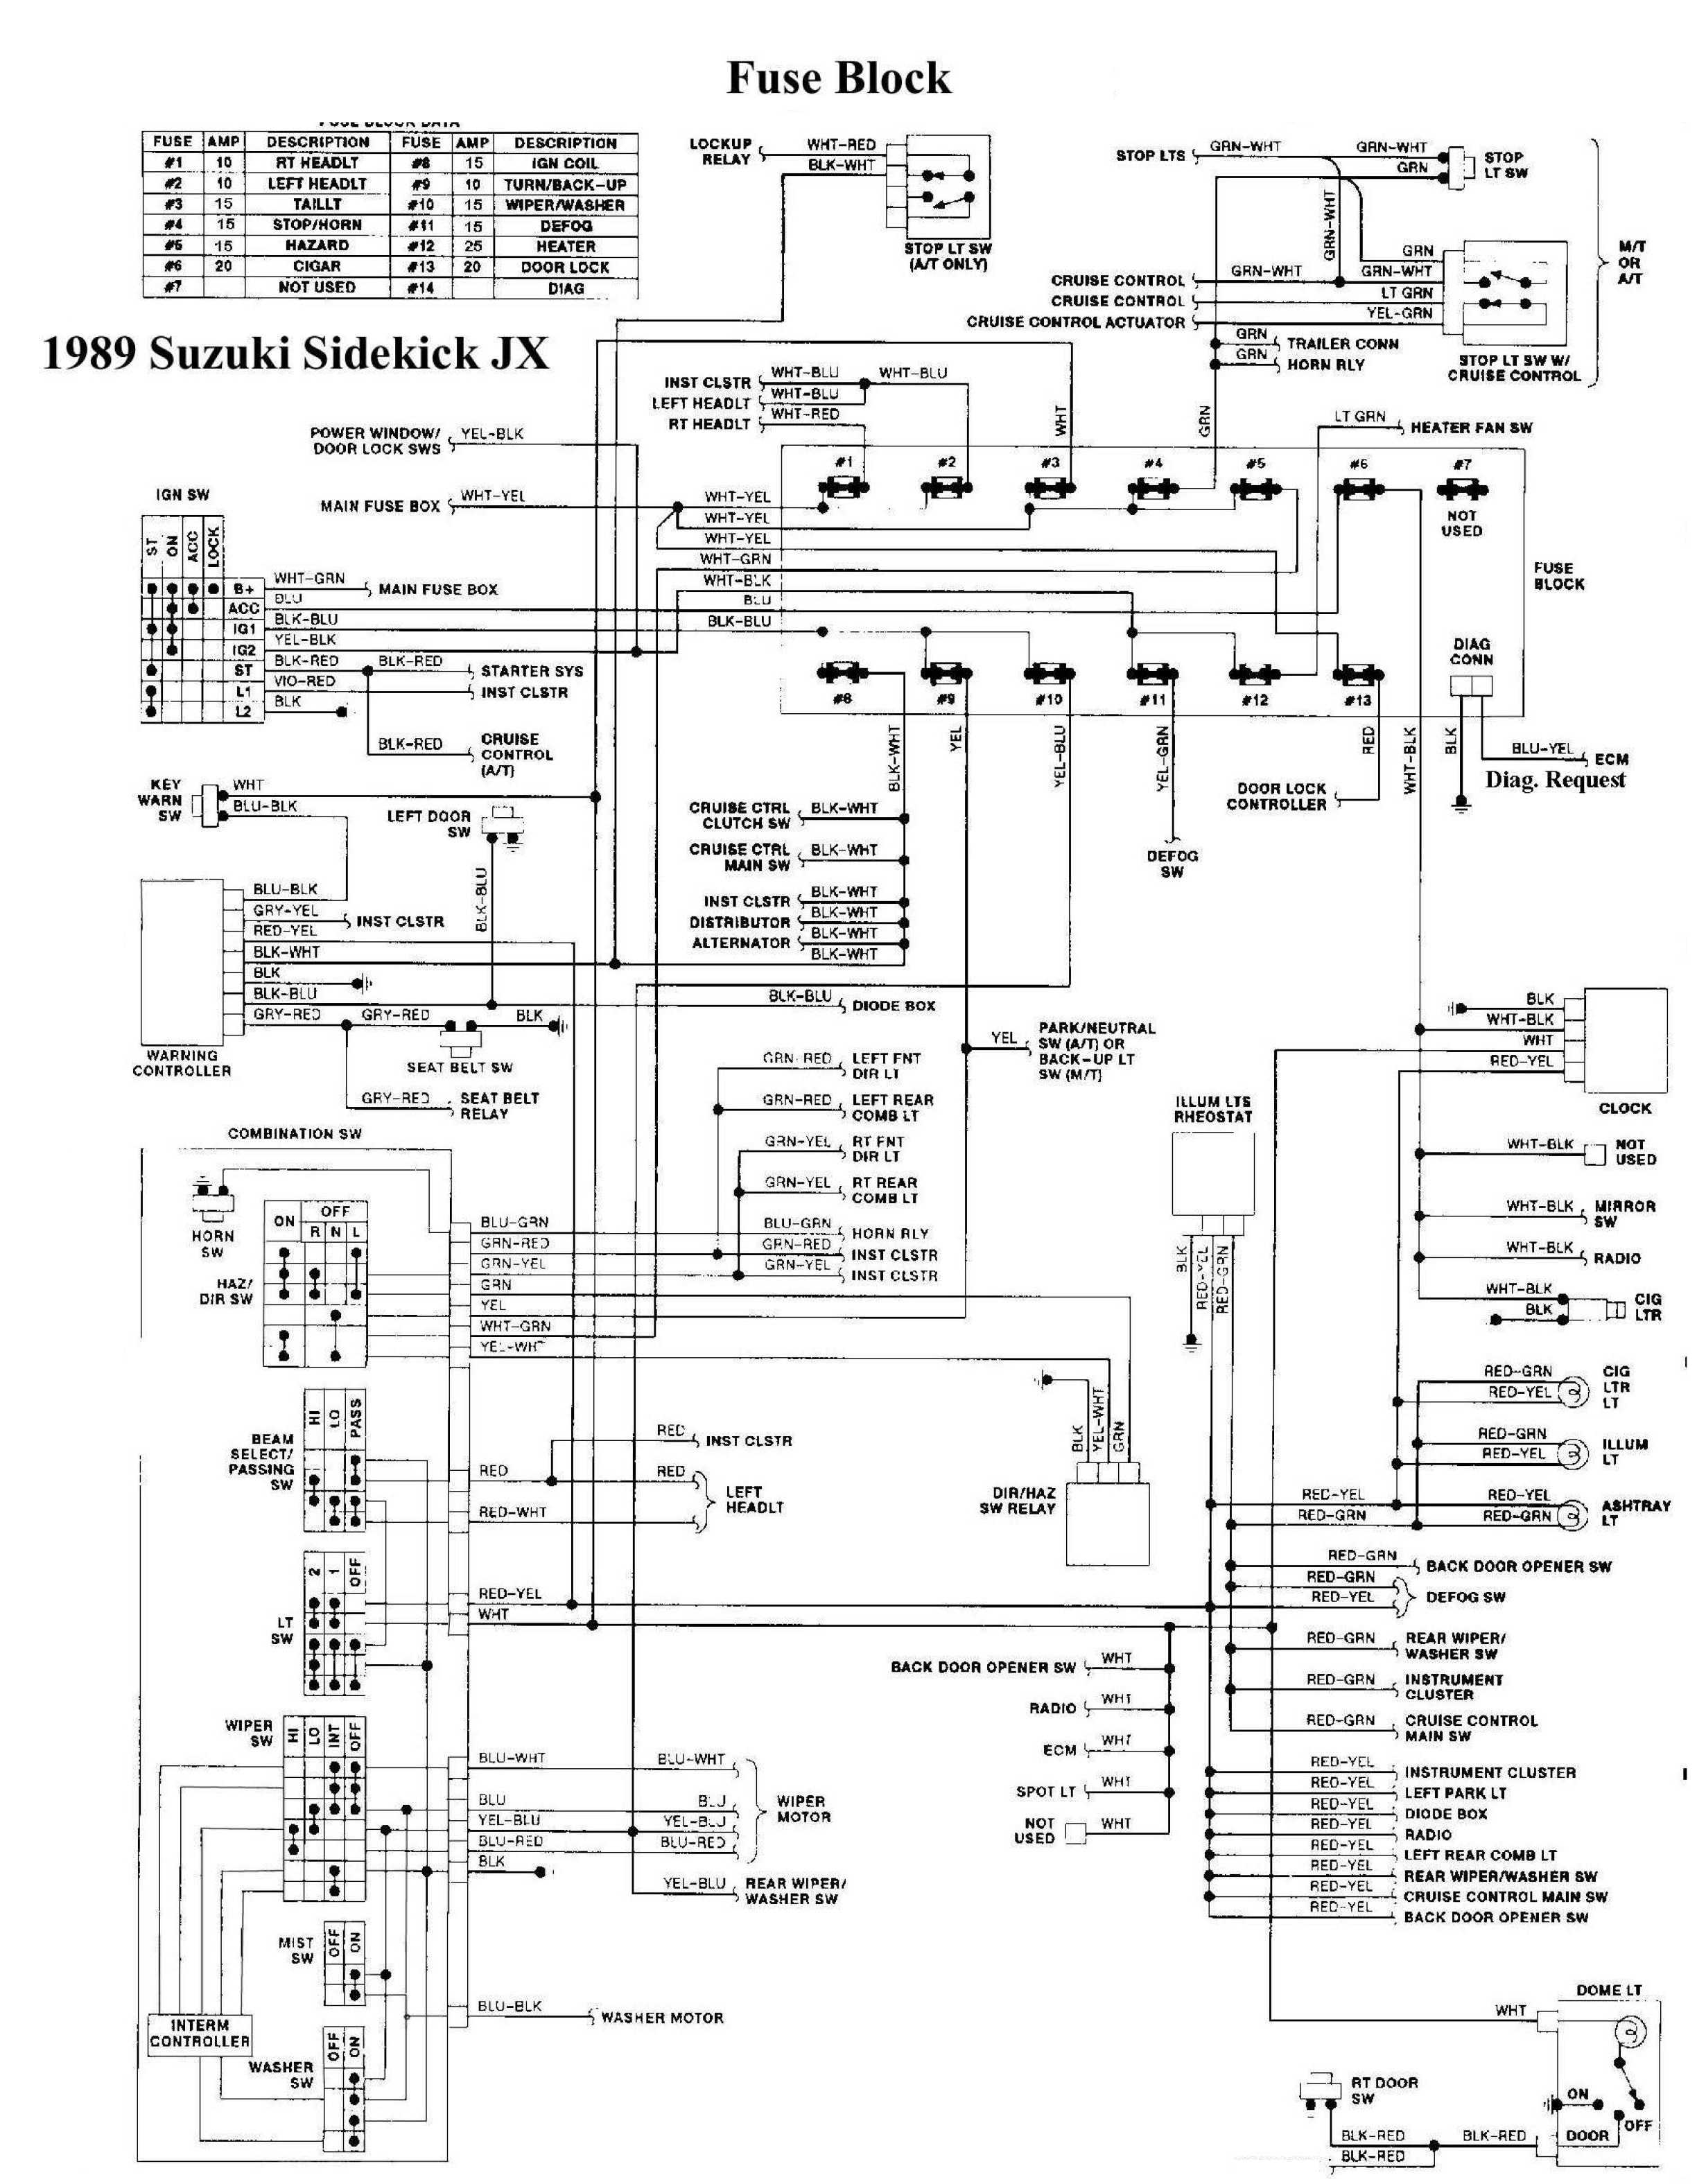 94 Suzuki Sidekick Fuse Box Diagram Great Design Of Wiring 1989 Dodge Dakota Car 1986 Samurai 36 Ram 1500 Jeep Grand Cherokee